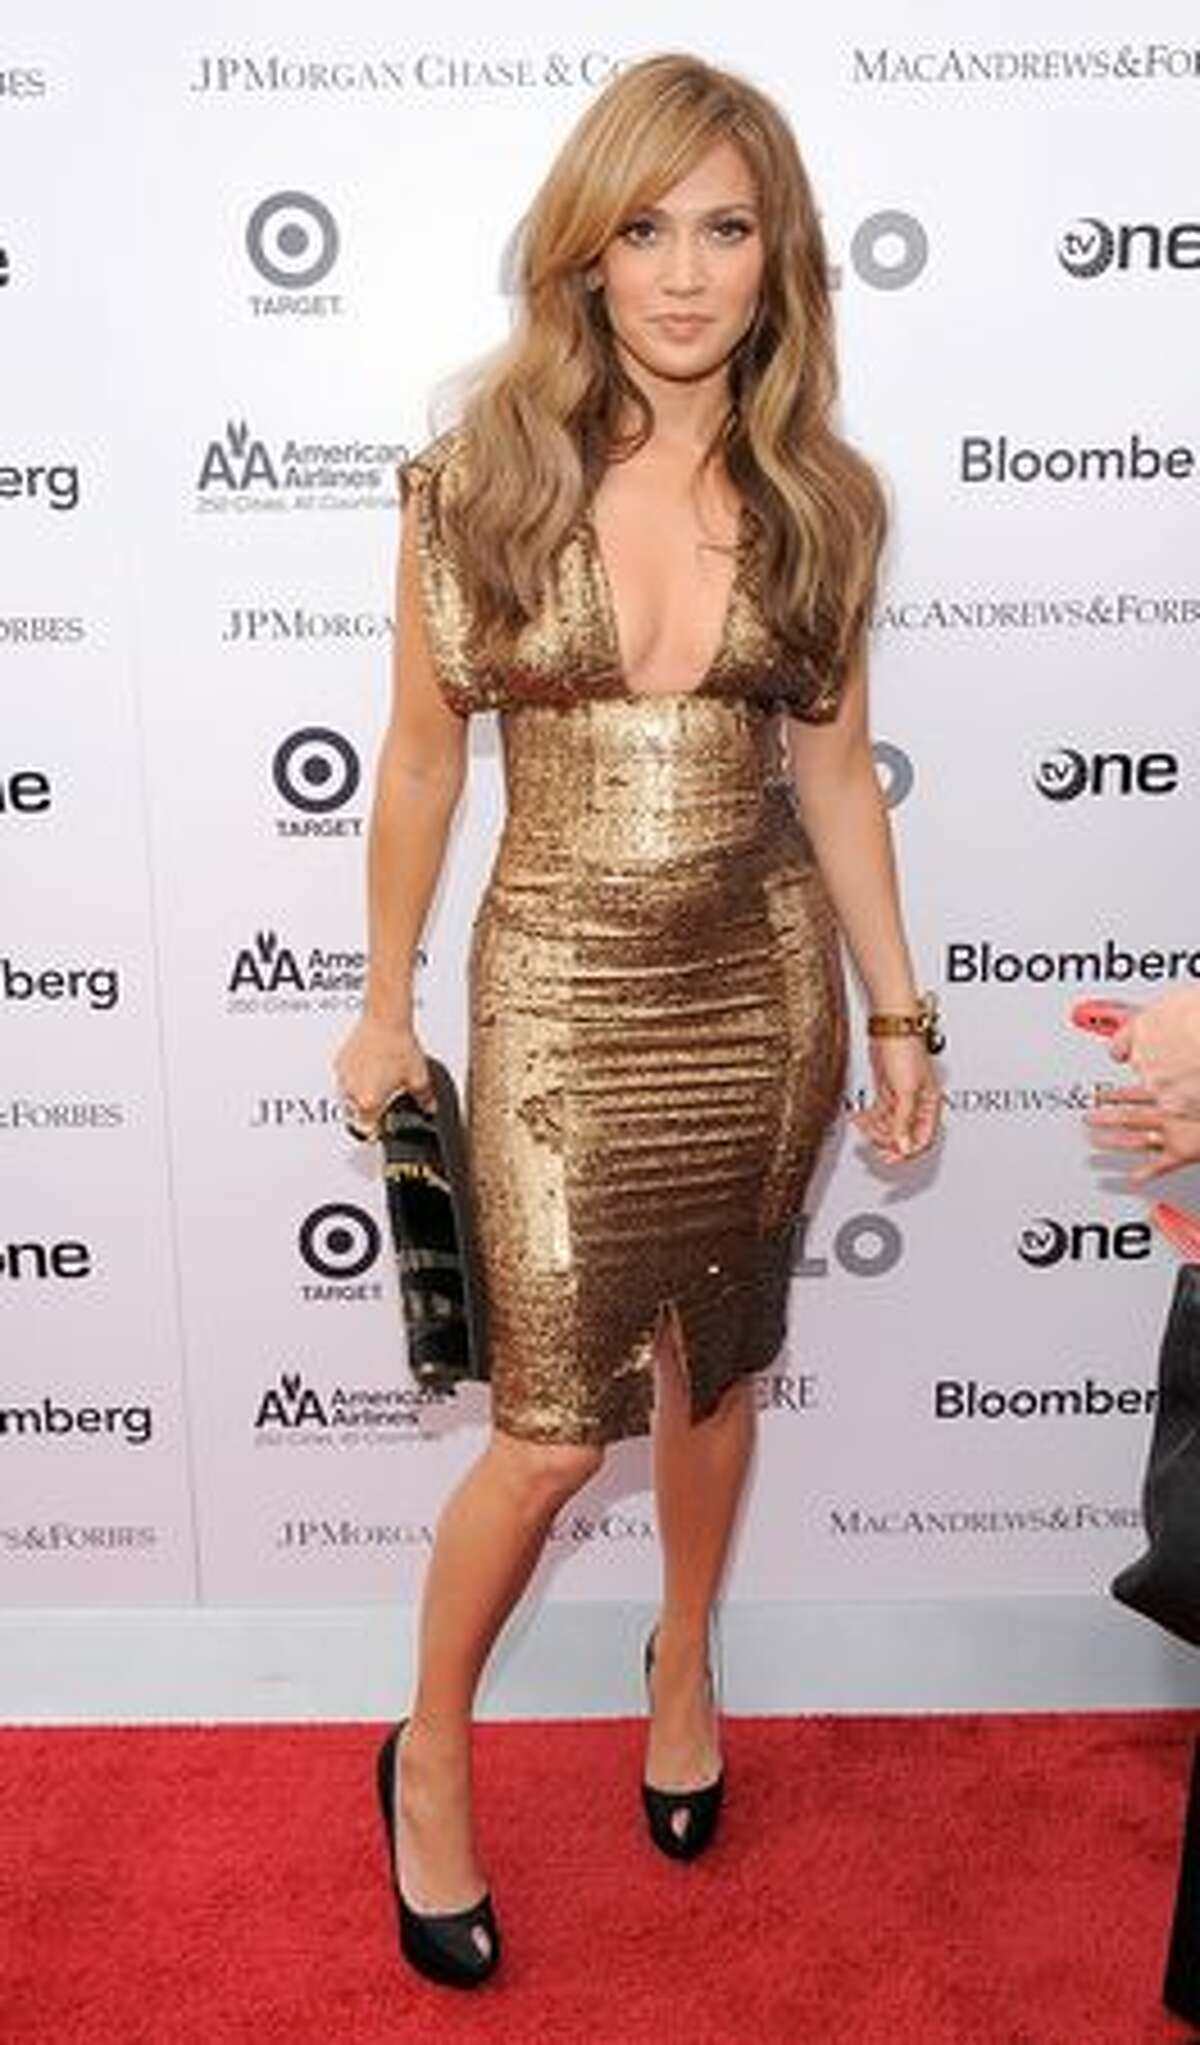 Singer\actress Jennifer Lopez poses for a photo on the red carpet at the 2010 Apollo Theater Spring Benefit Concert & Awards Ceremony at The Apollo Theater.